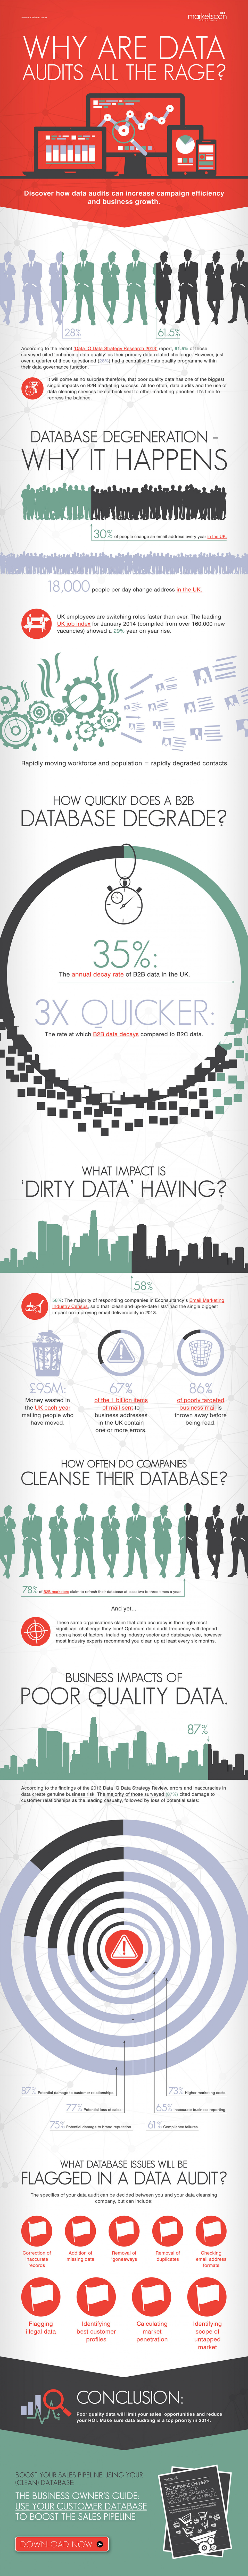 Why Are Data Audits all the Rage? Infographic